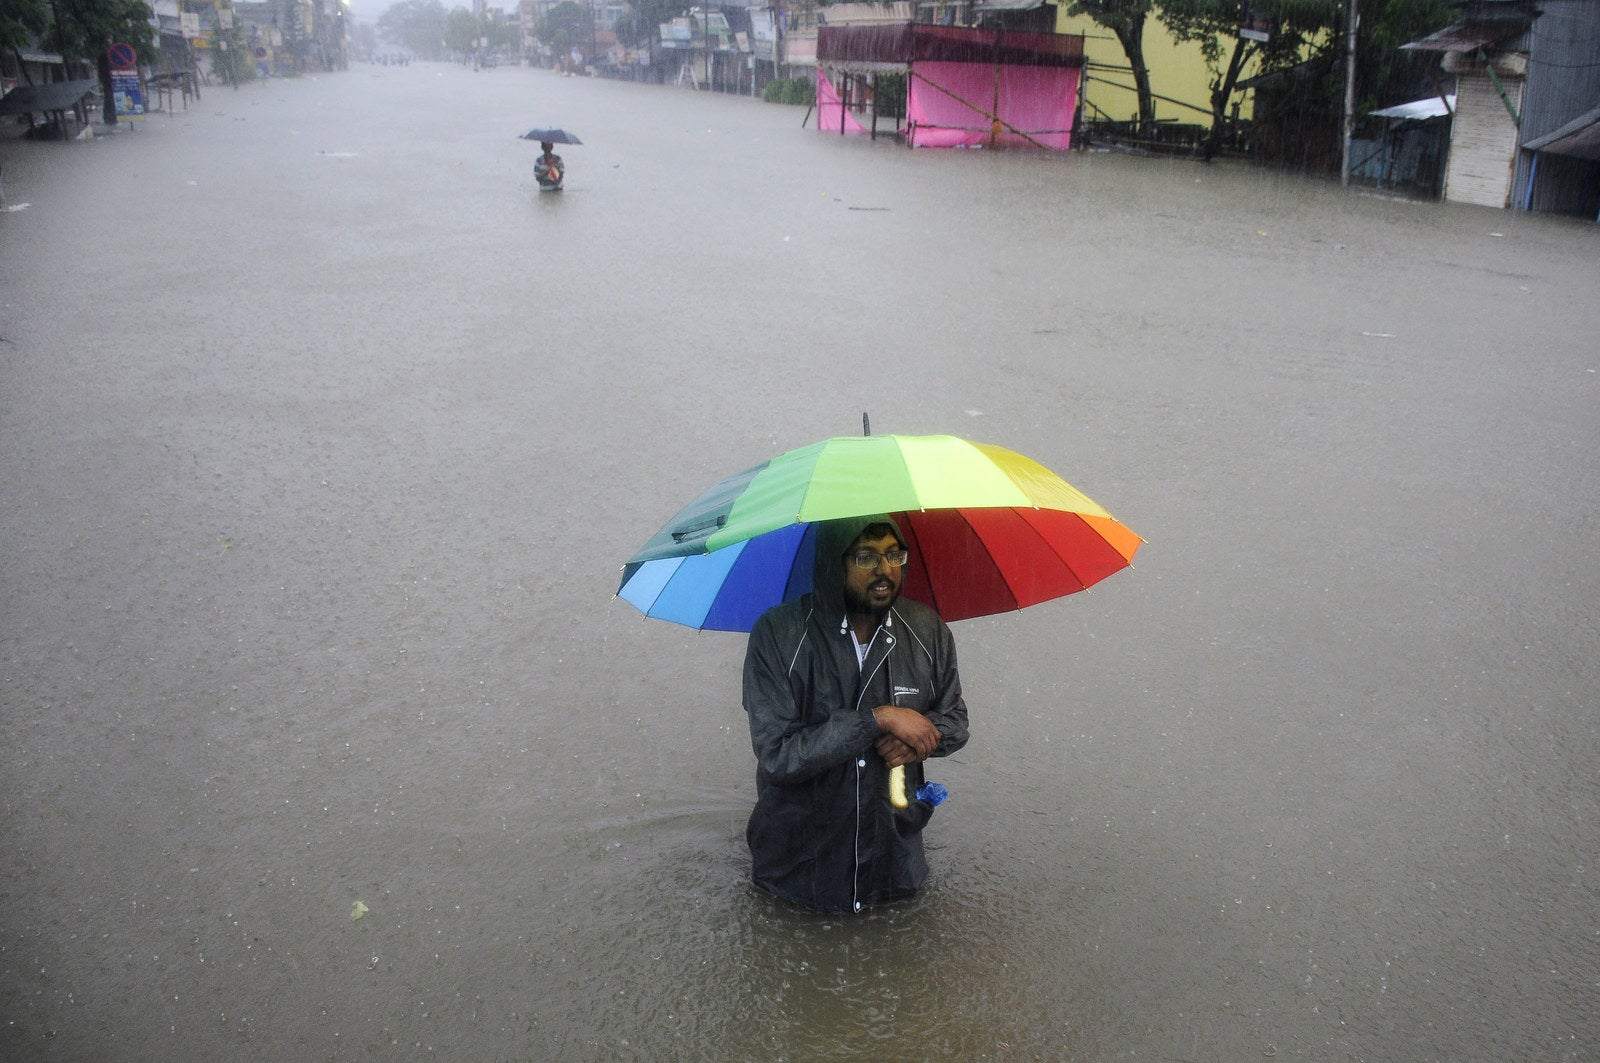 A man walks through a flooded street during a heavy downpour in the northeastern Indian state of Tripura.